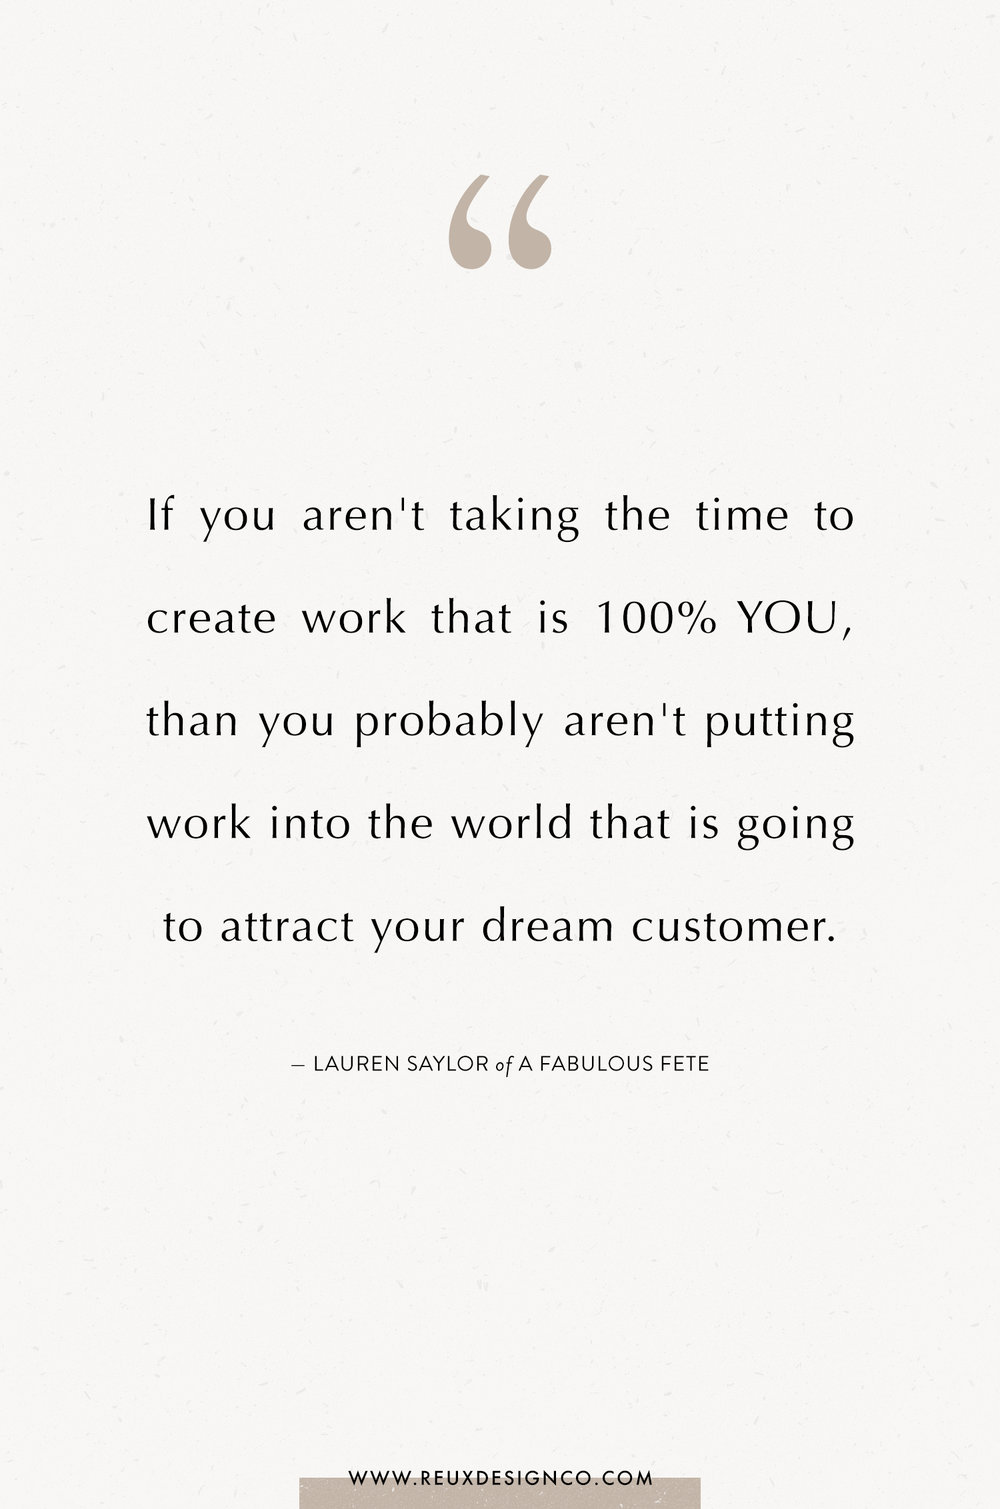 Branding + Business Tips from Lauren Saylor of A Fabulous Fete on the Reux Design Co. blog | positive affirmations, quotes on energy, quotes on abundance, affirmations on creativity, affirmations for women, affirmations for entrepreneurs, words to live by, build a sustainable business you love